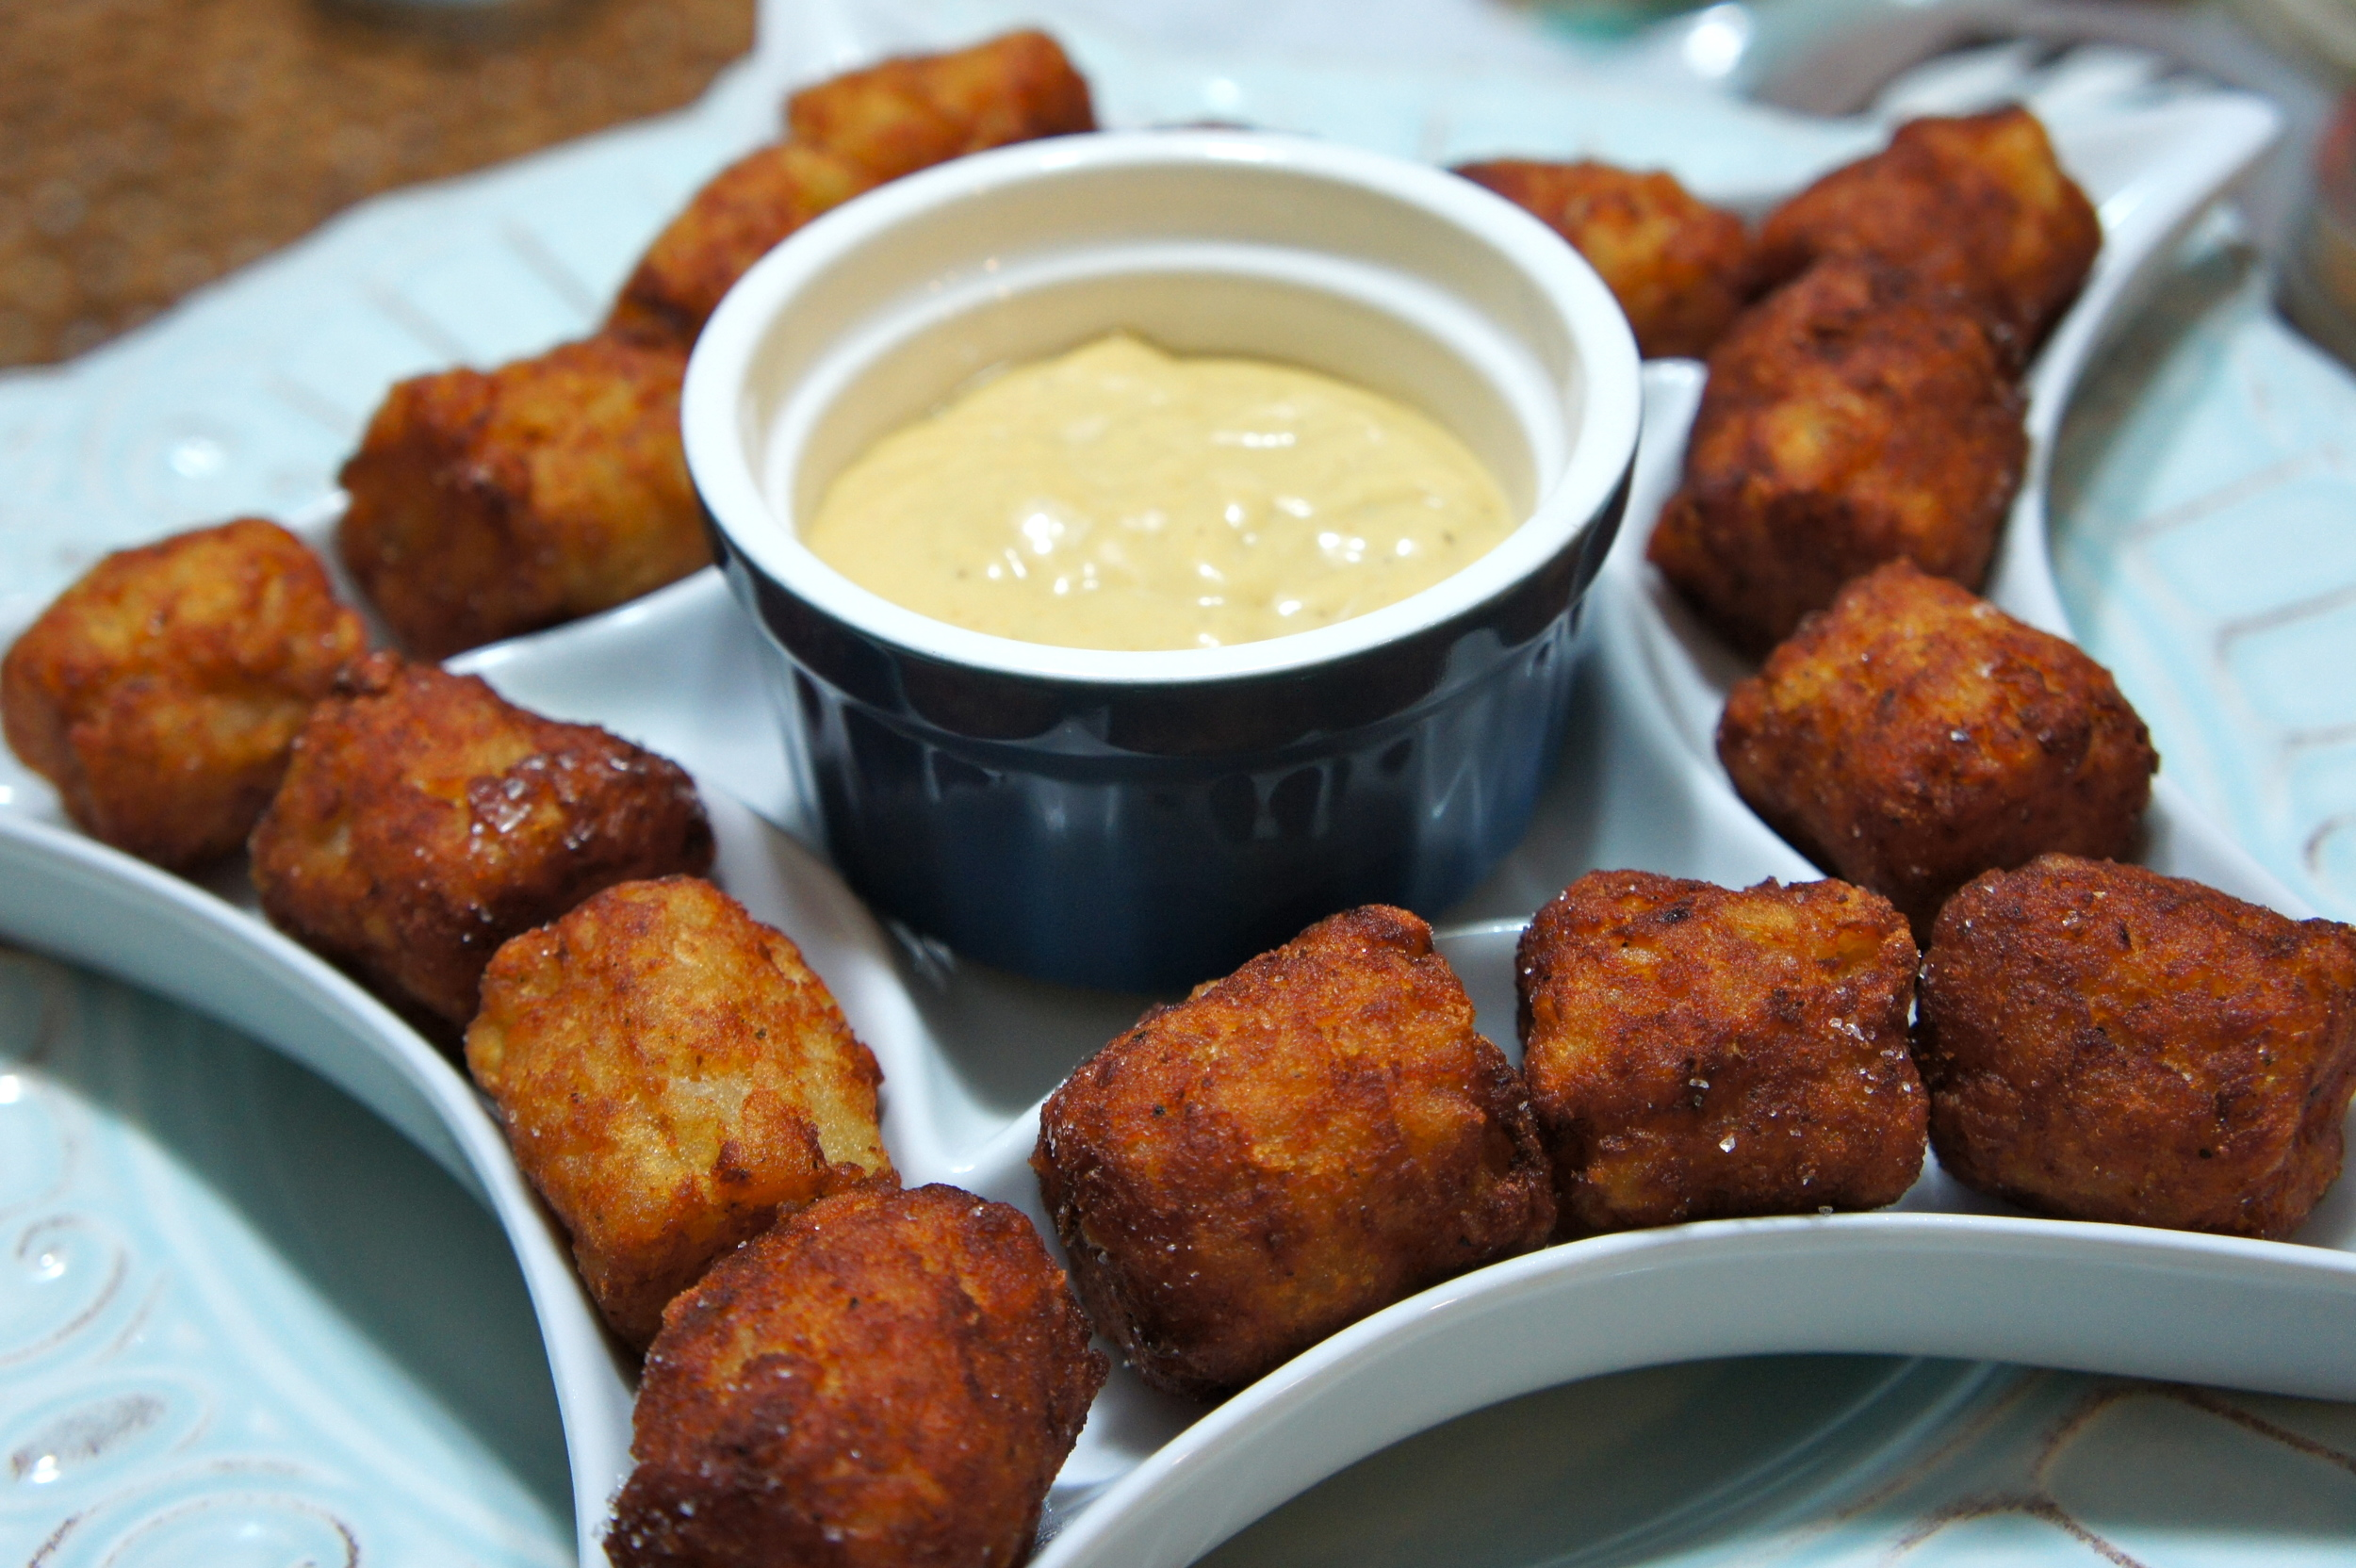 tater tots with chick